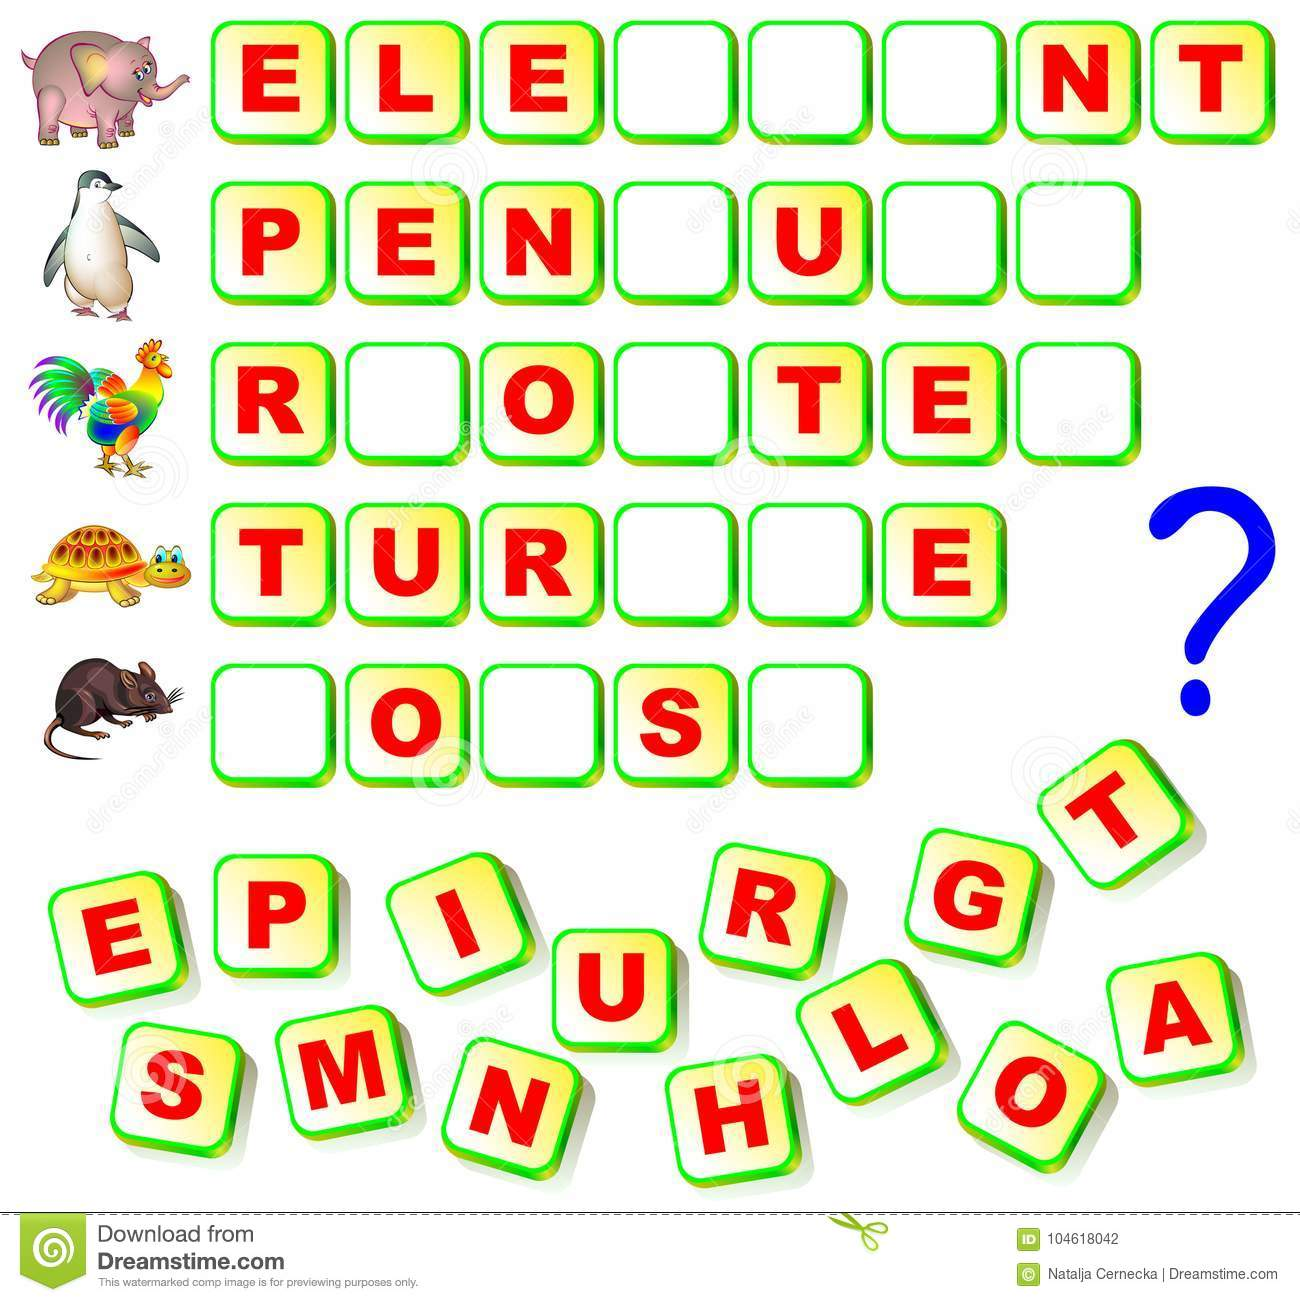 Worksheet For Children With Exercise For Study English